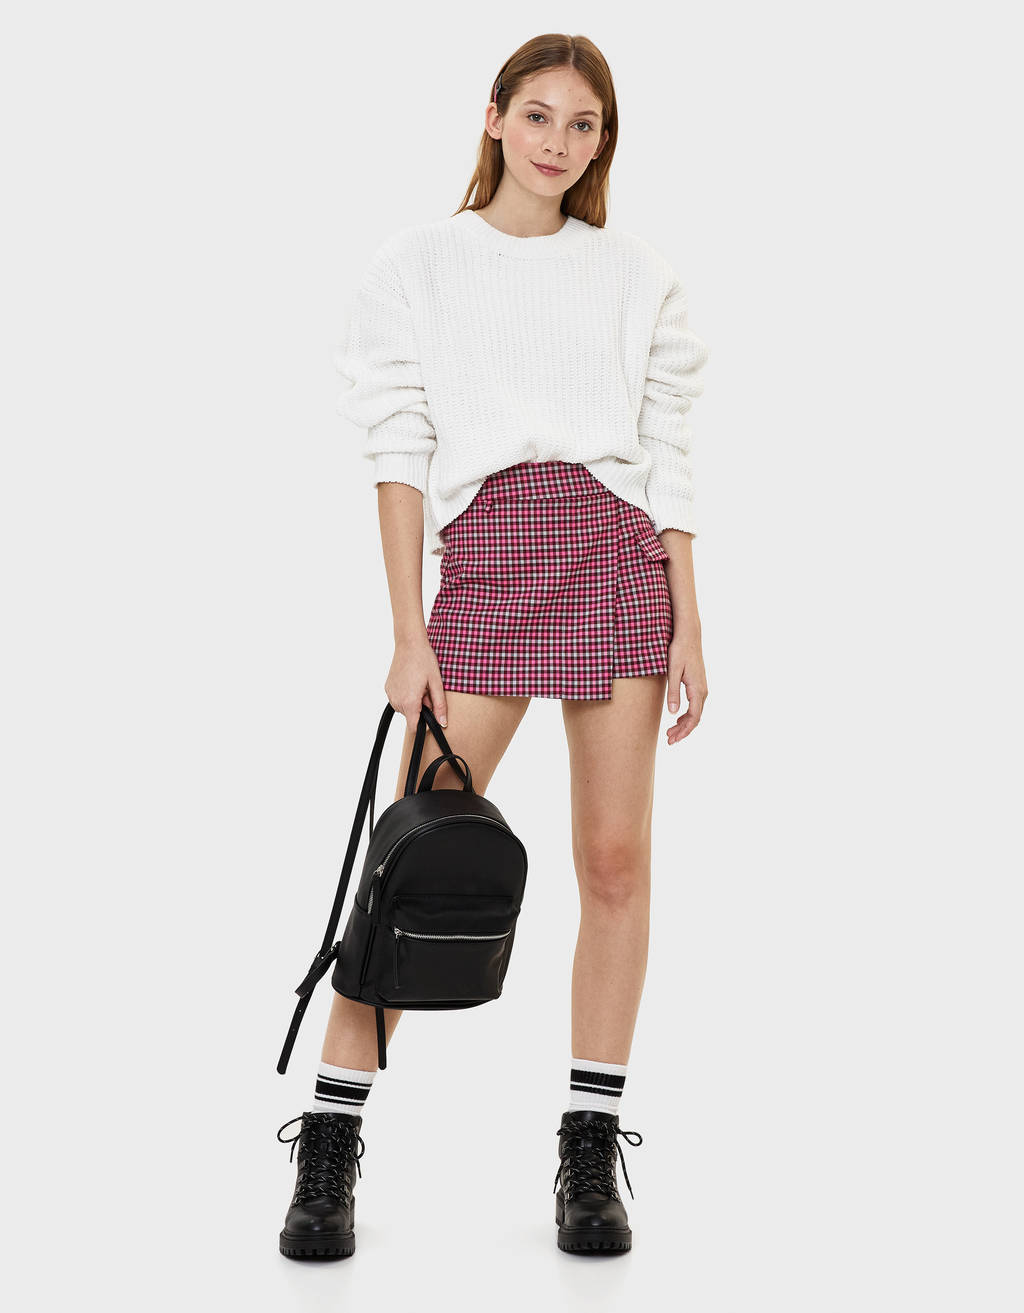 f57a5e3e621d8 Women's skirts - Fall 2019 | Bershka